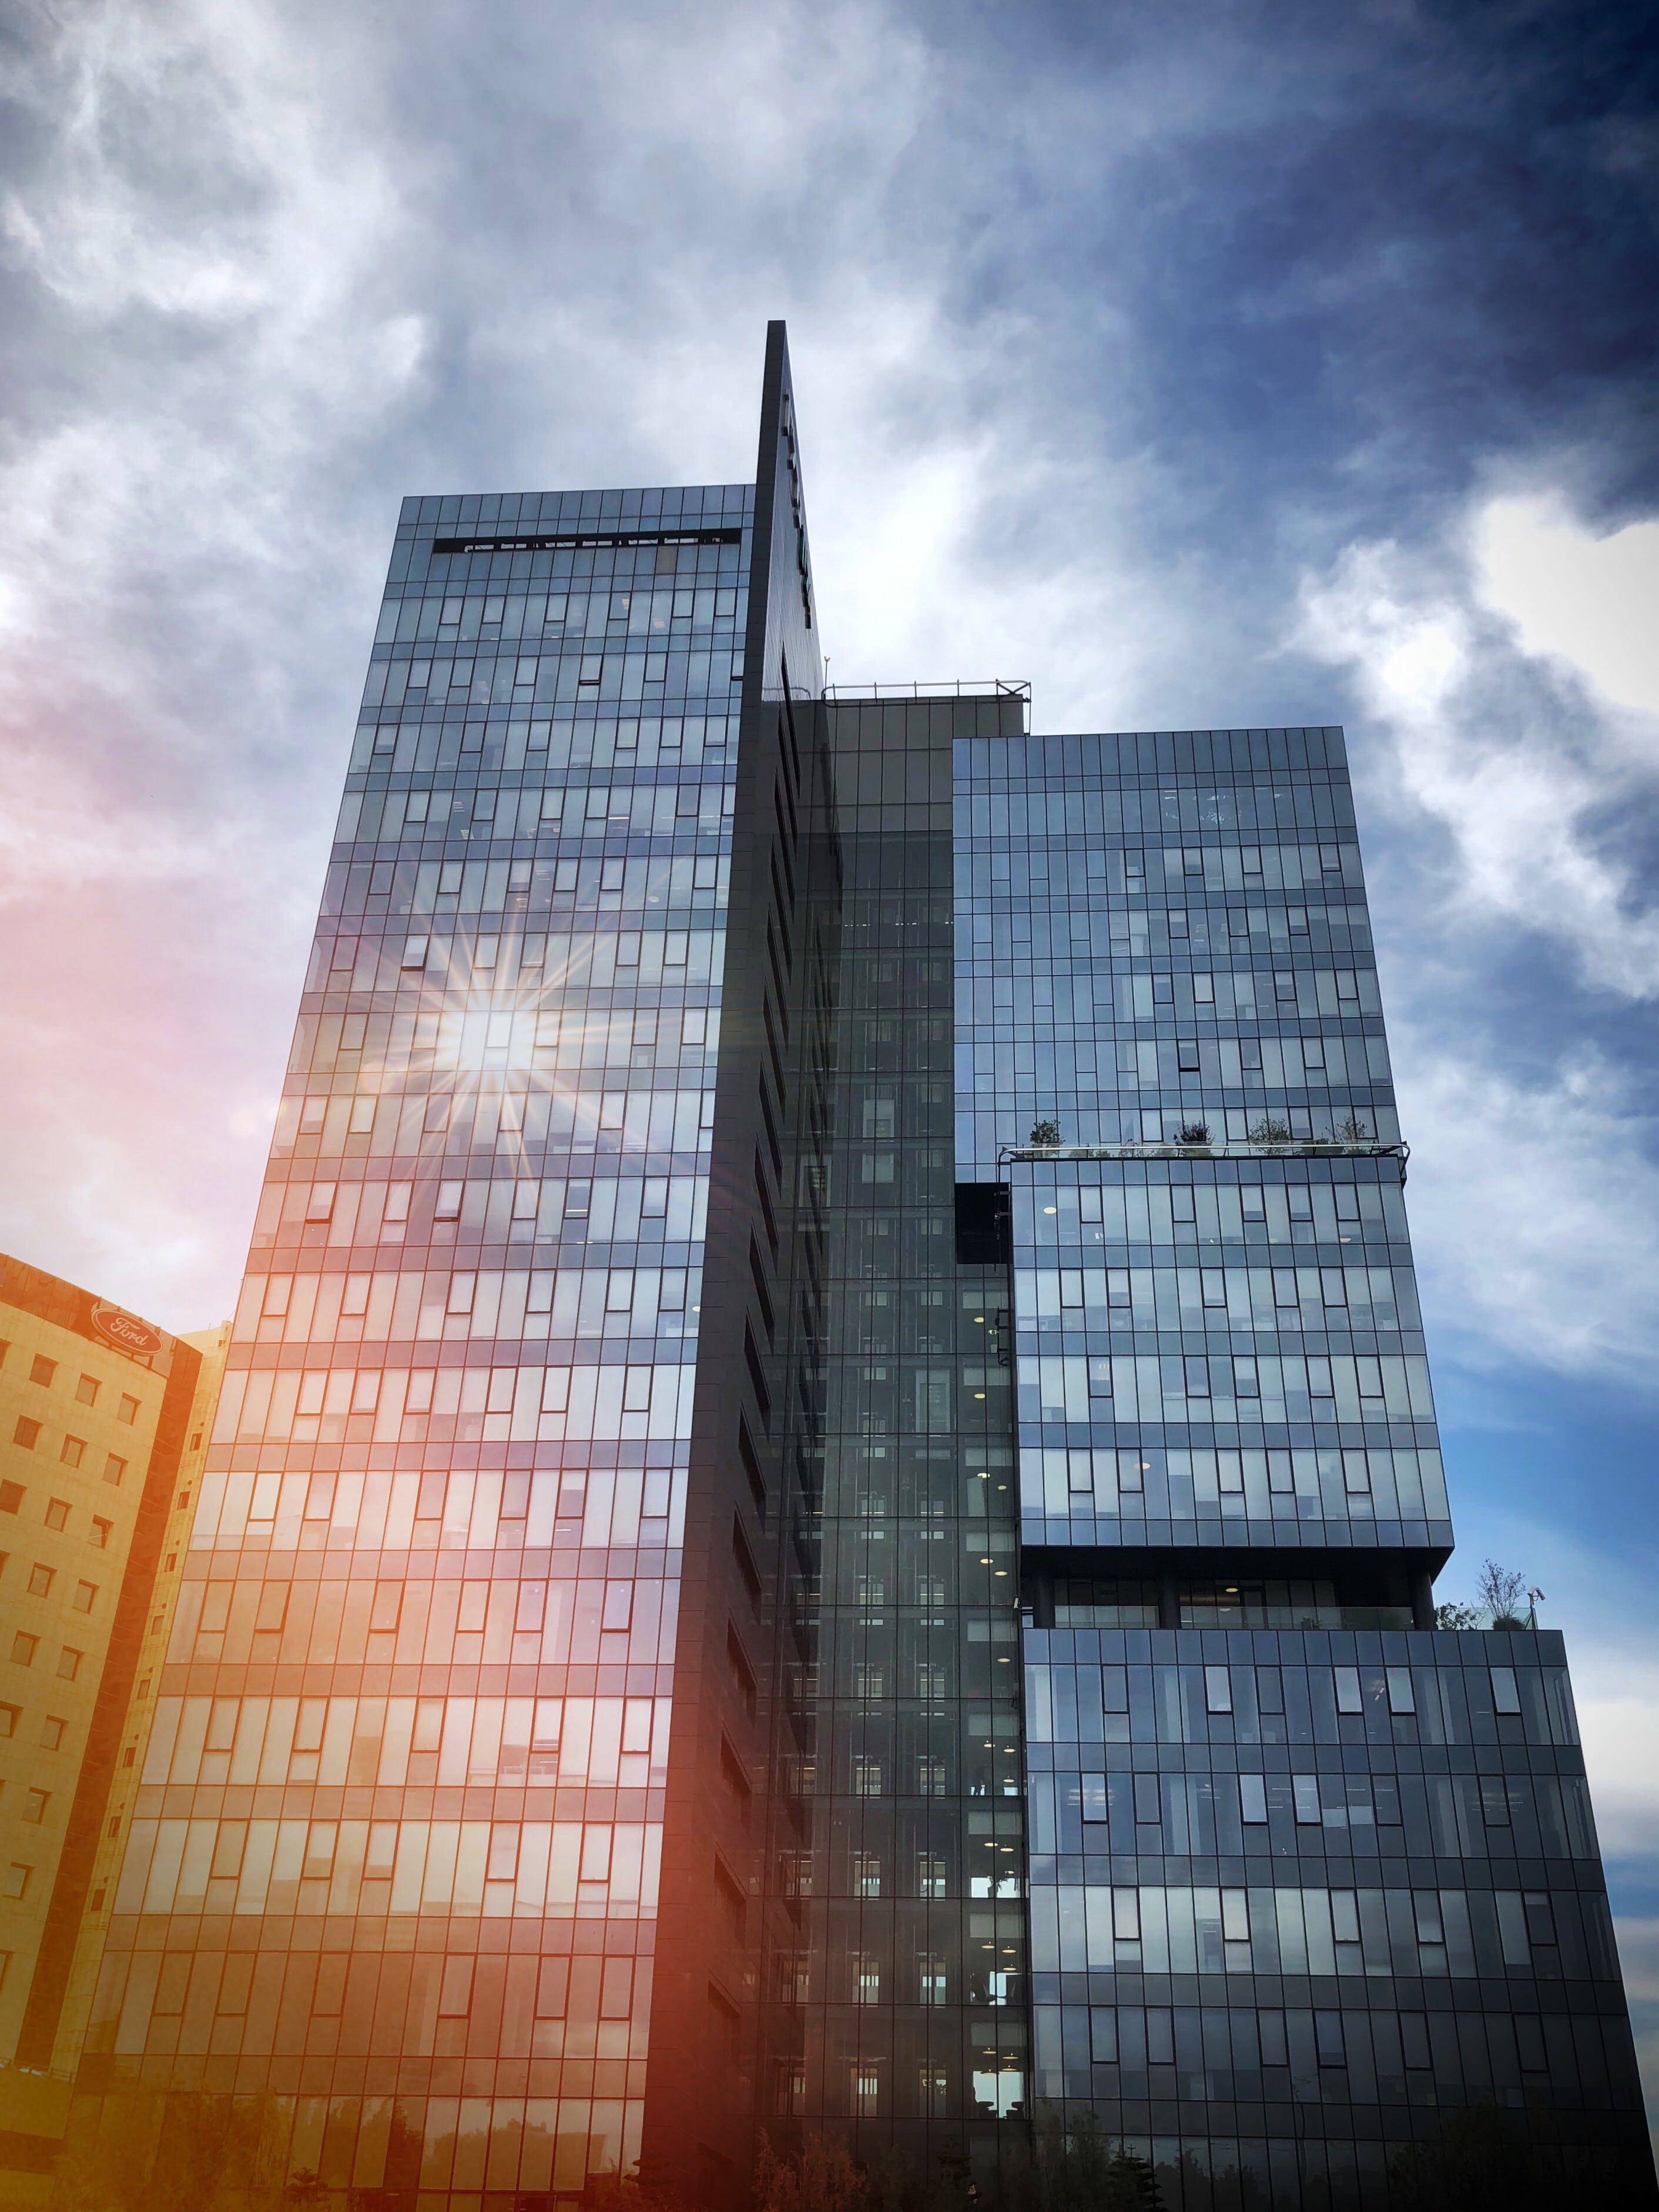 Free stock photo of building, glass windows, Israel, light reflections